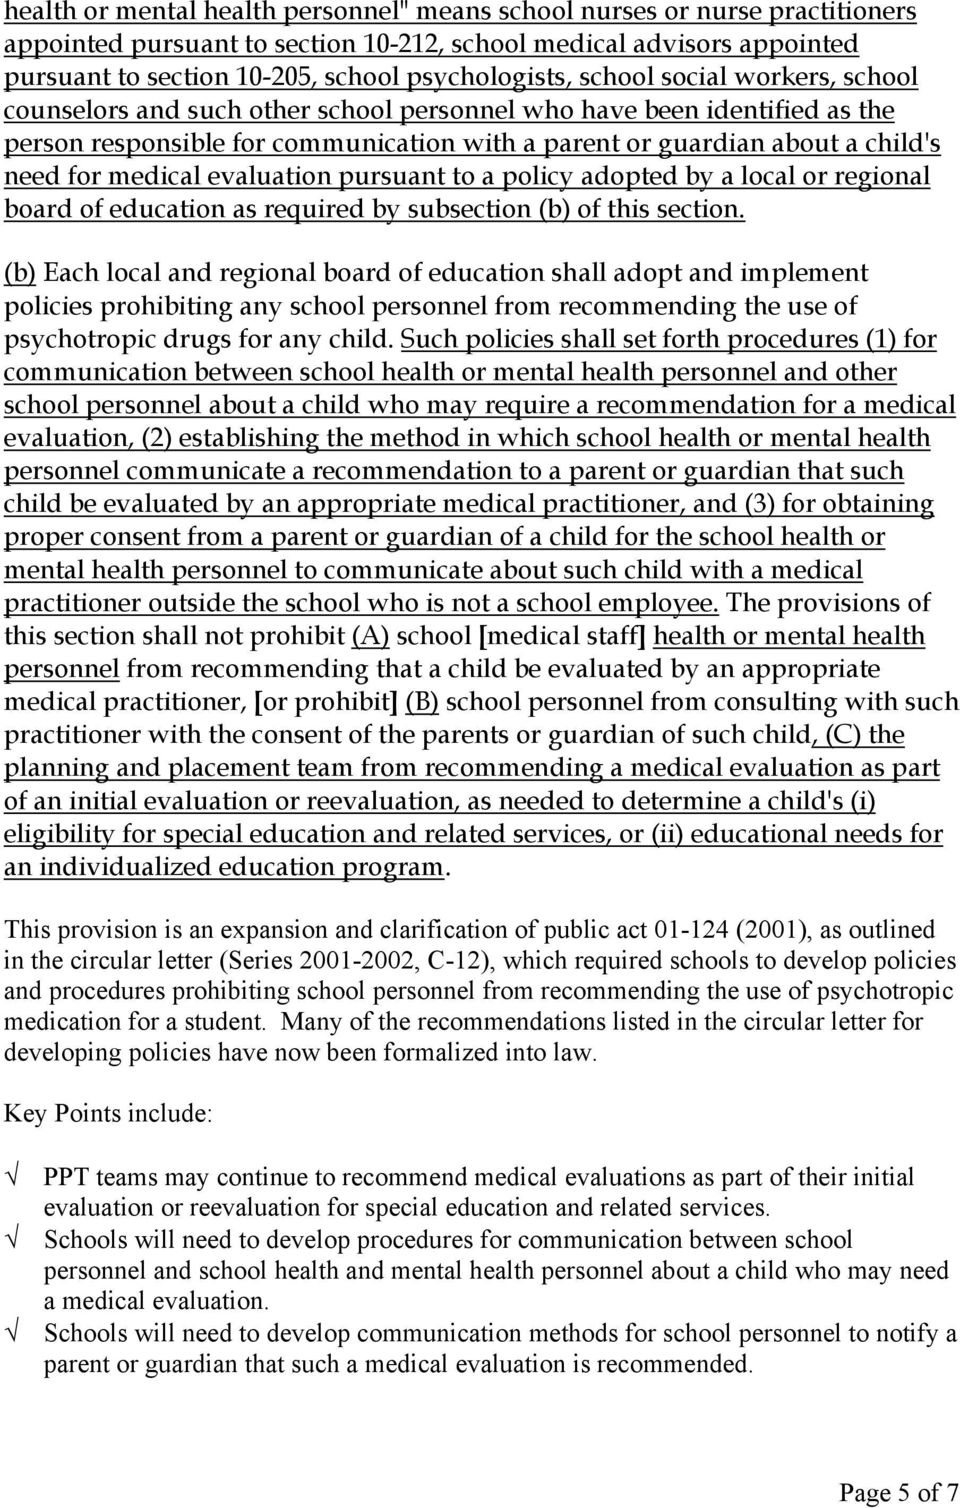 medical evaluation pursuant to a policy adopted by a local or regional board of education as required by subsection (b) of this section.